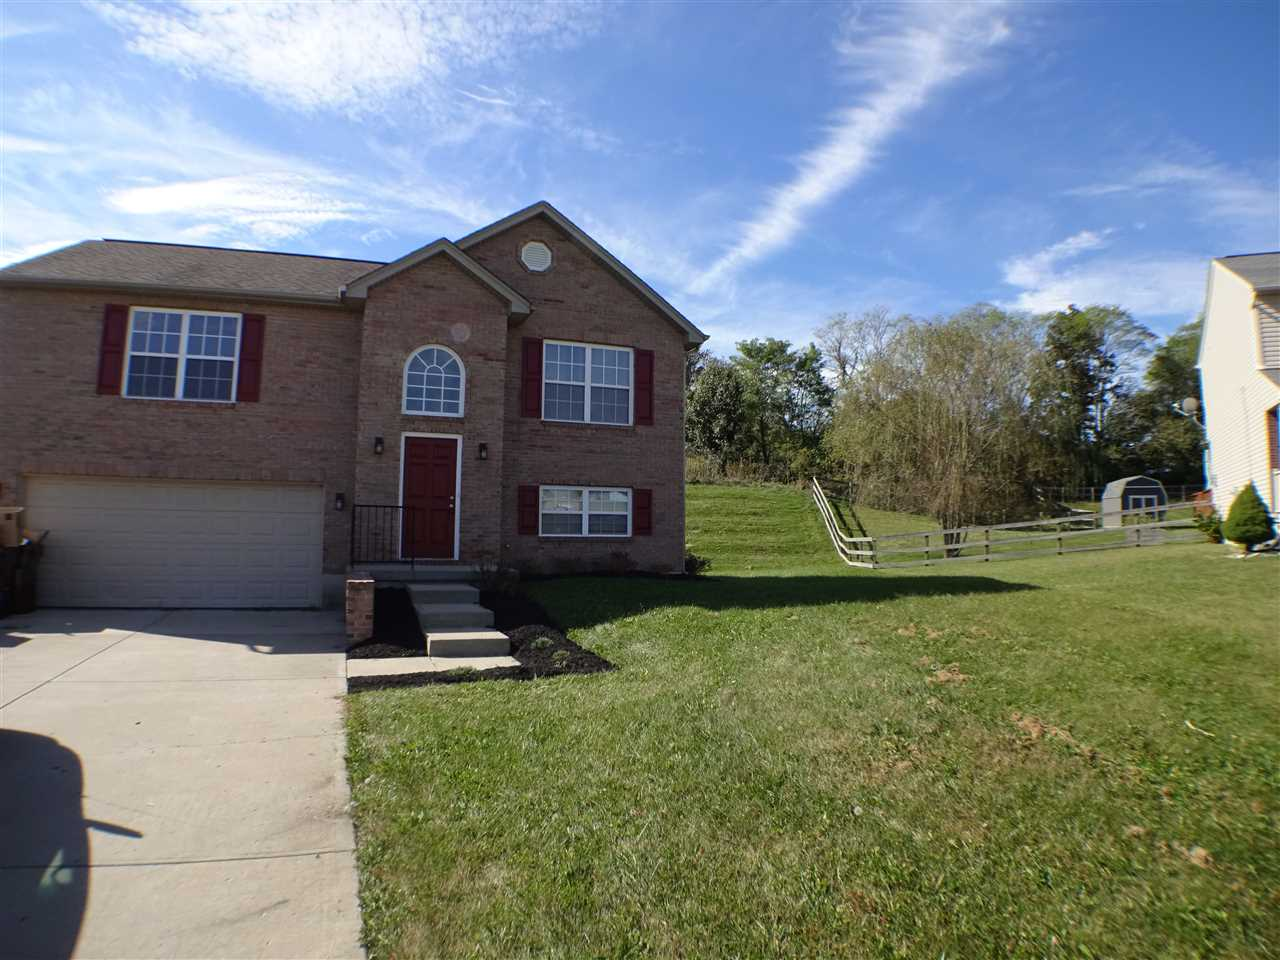 Photo 1 for 10340 Trent Ct Independence, KY 41051